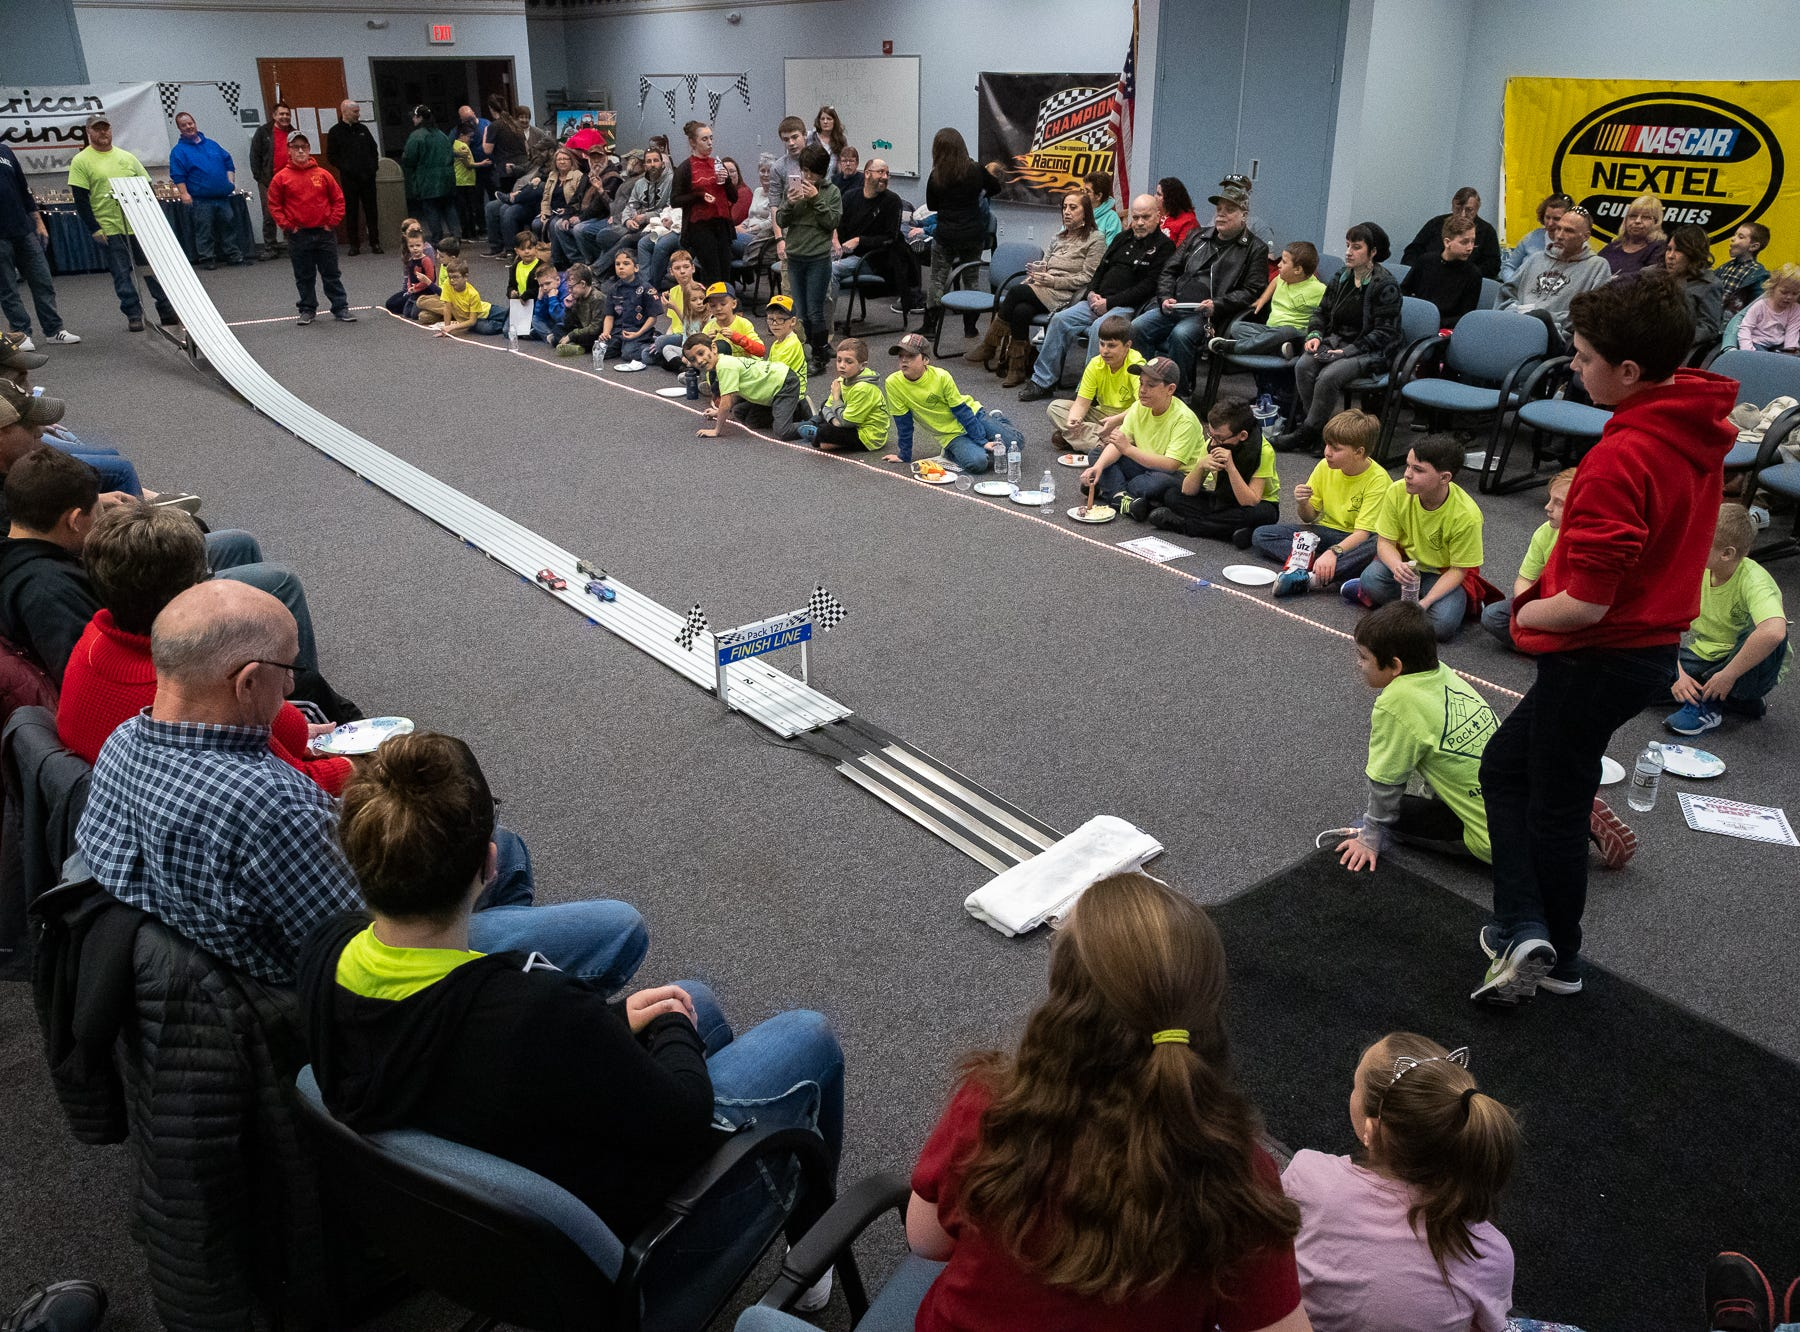 Spectators watch cars race during the cub scouts pack 127 Pinewood Derby event at Lincoln Intermediate Unit 12, Sunday, Feb. 10 in New Oxford. The scouts had a month to design their custom pinewood cars to race in the event.